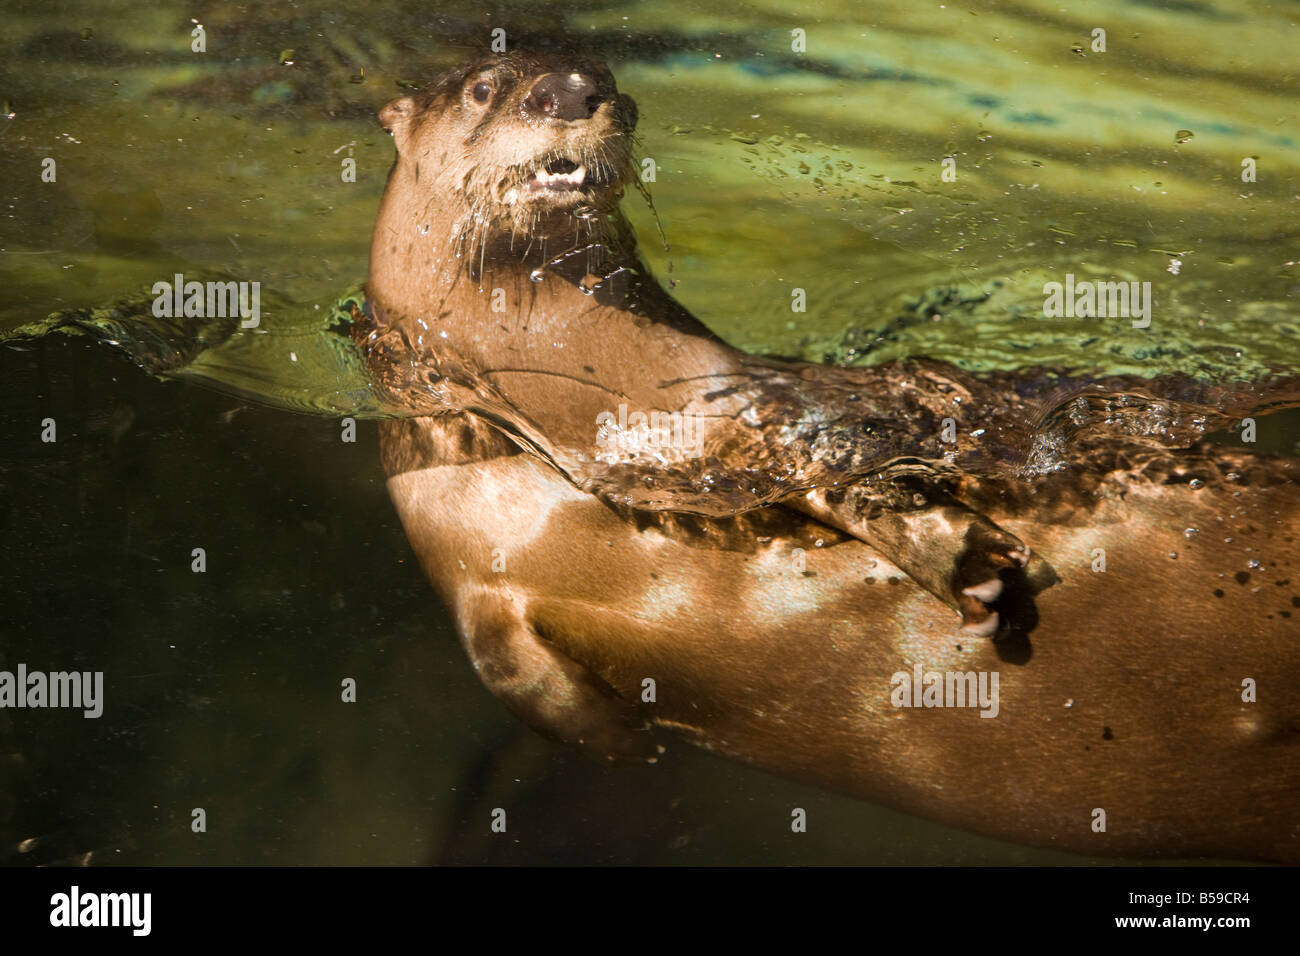 A Northern river otter (Lontra canadensis) plays in his aquarium home at Brookgreen Gardens,Murrells Inlet,South - Stock Image